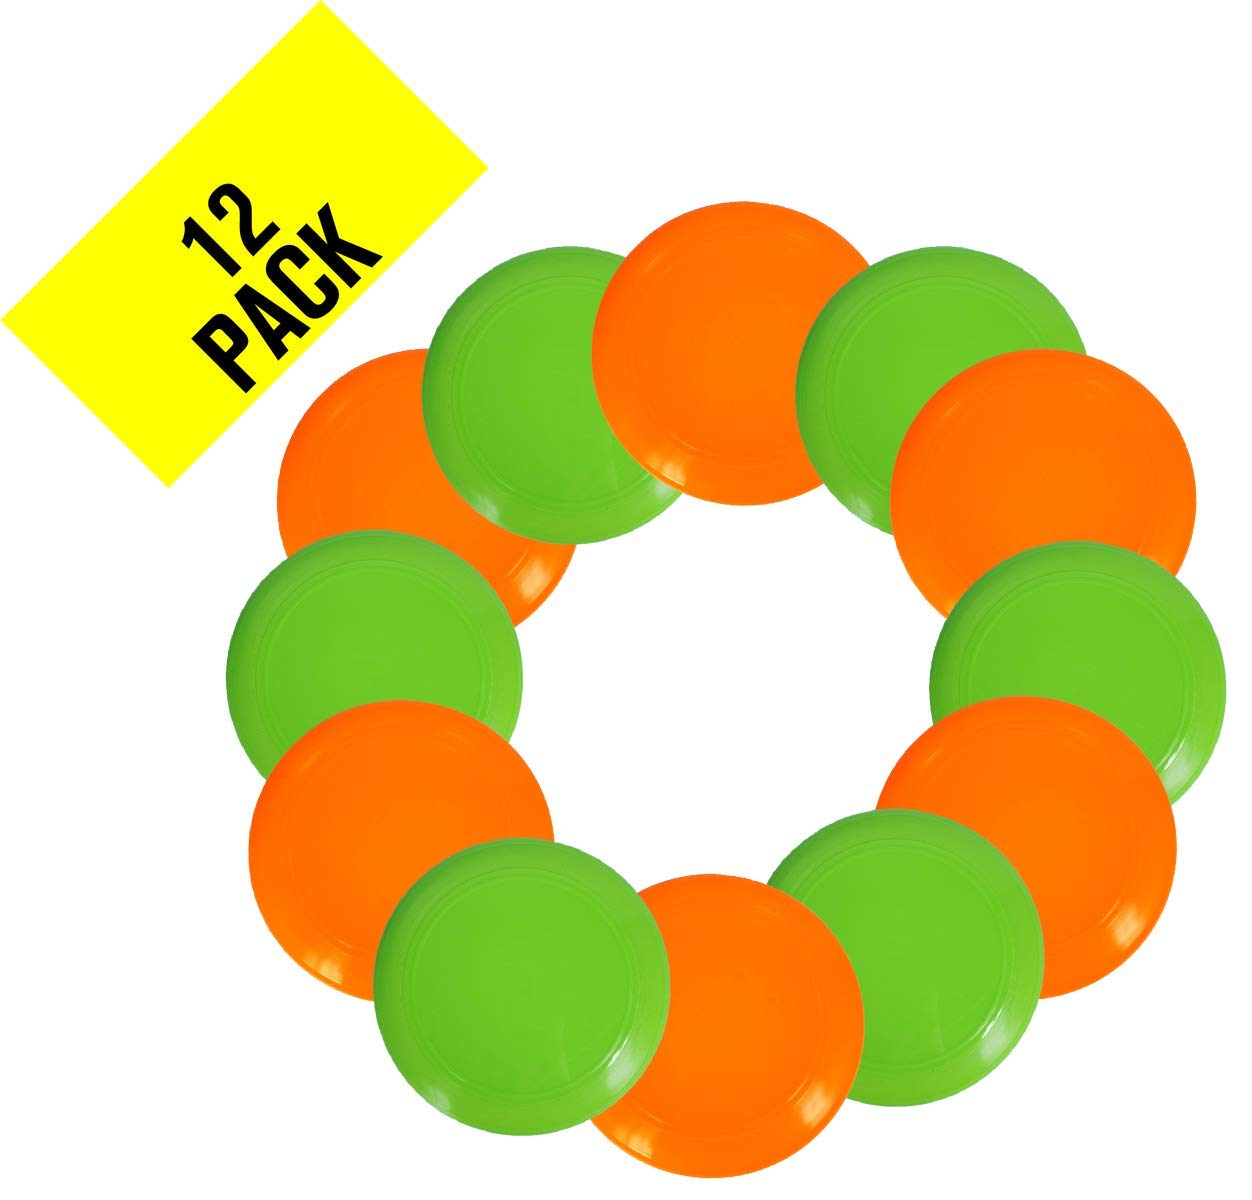 Plastic Flying Disc - Pack of 12 Discs - Assorted Colors - Heavy-Duty Bulk Set of 11-inch Flying Saucers - Great for School, Classroom, Prizes, and Party Favors - Best Value - Made in USA (Assorted) by PTC, Inc.